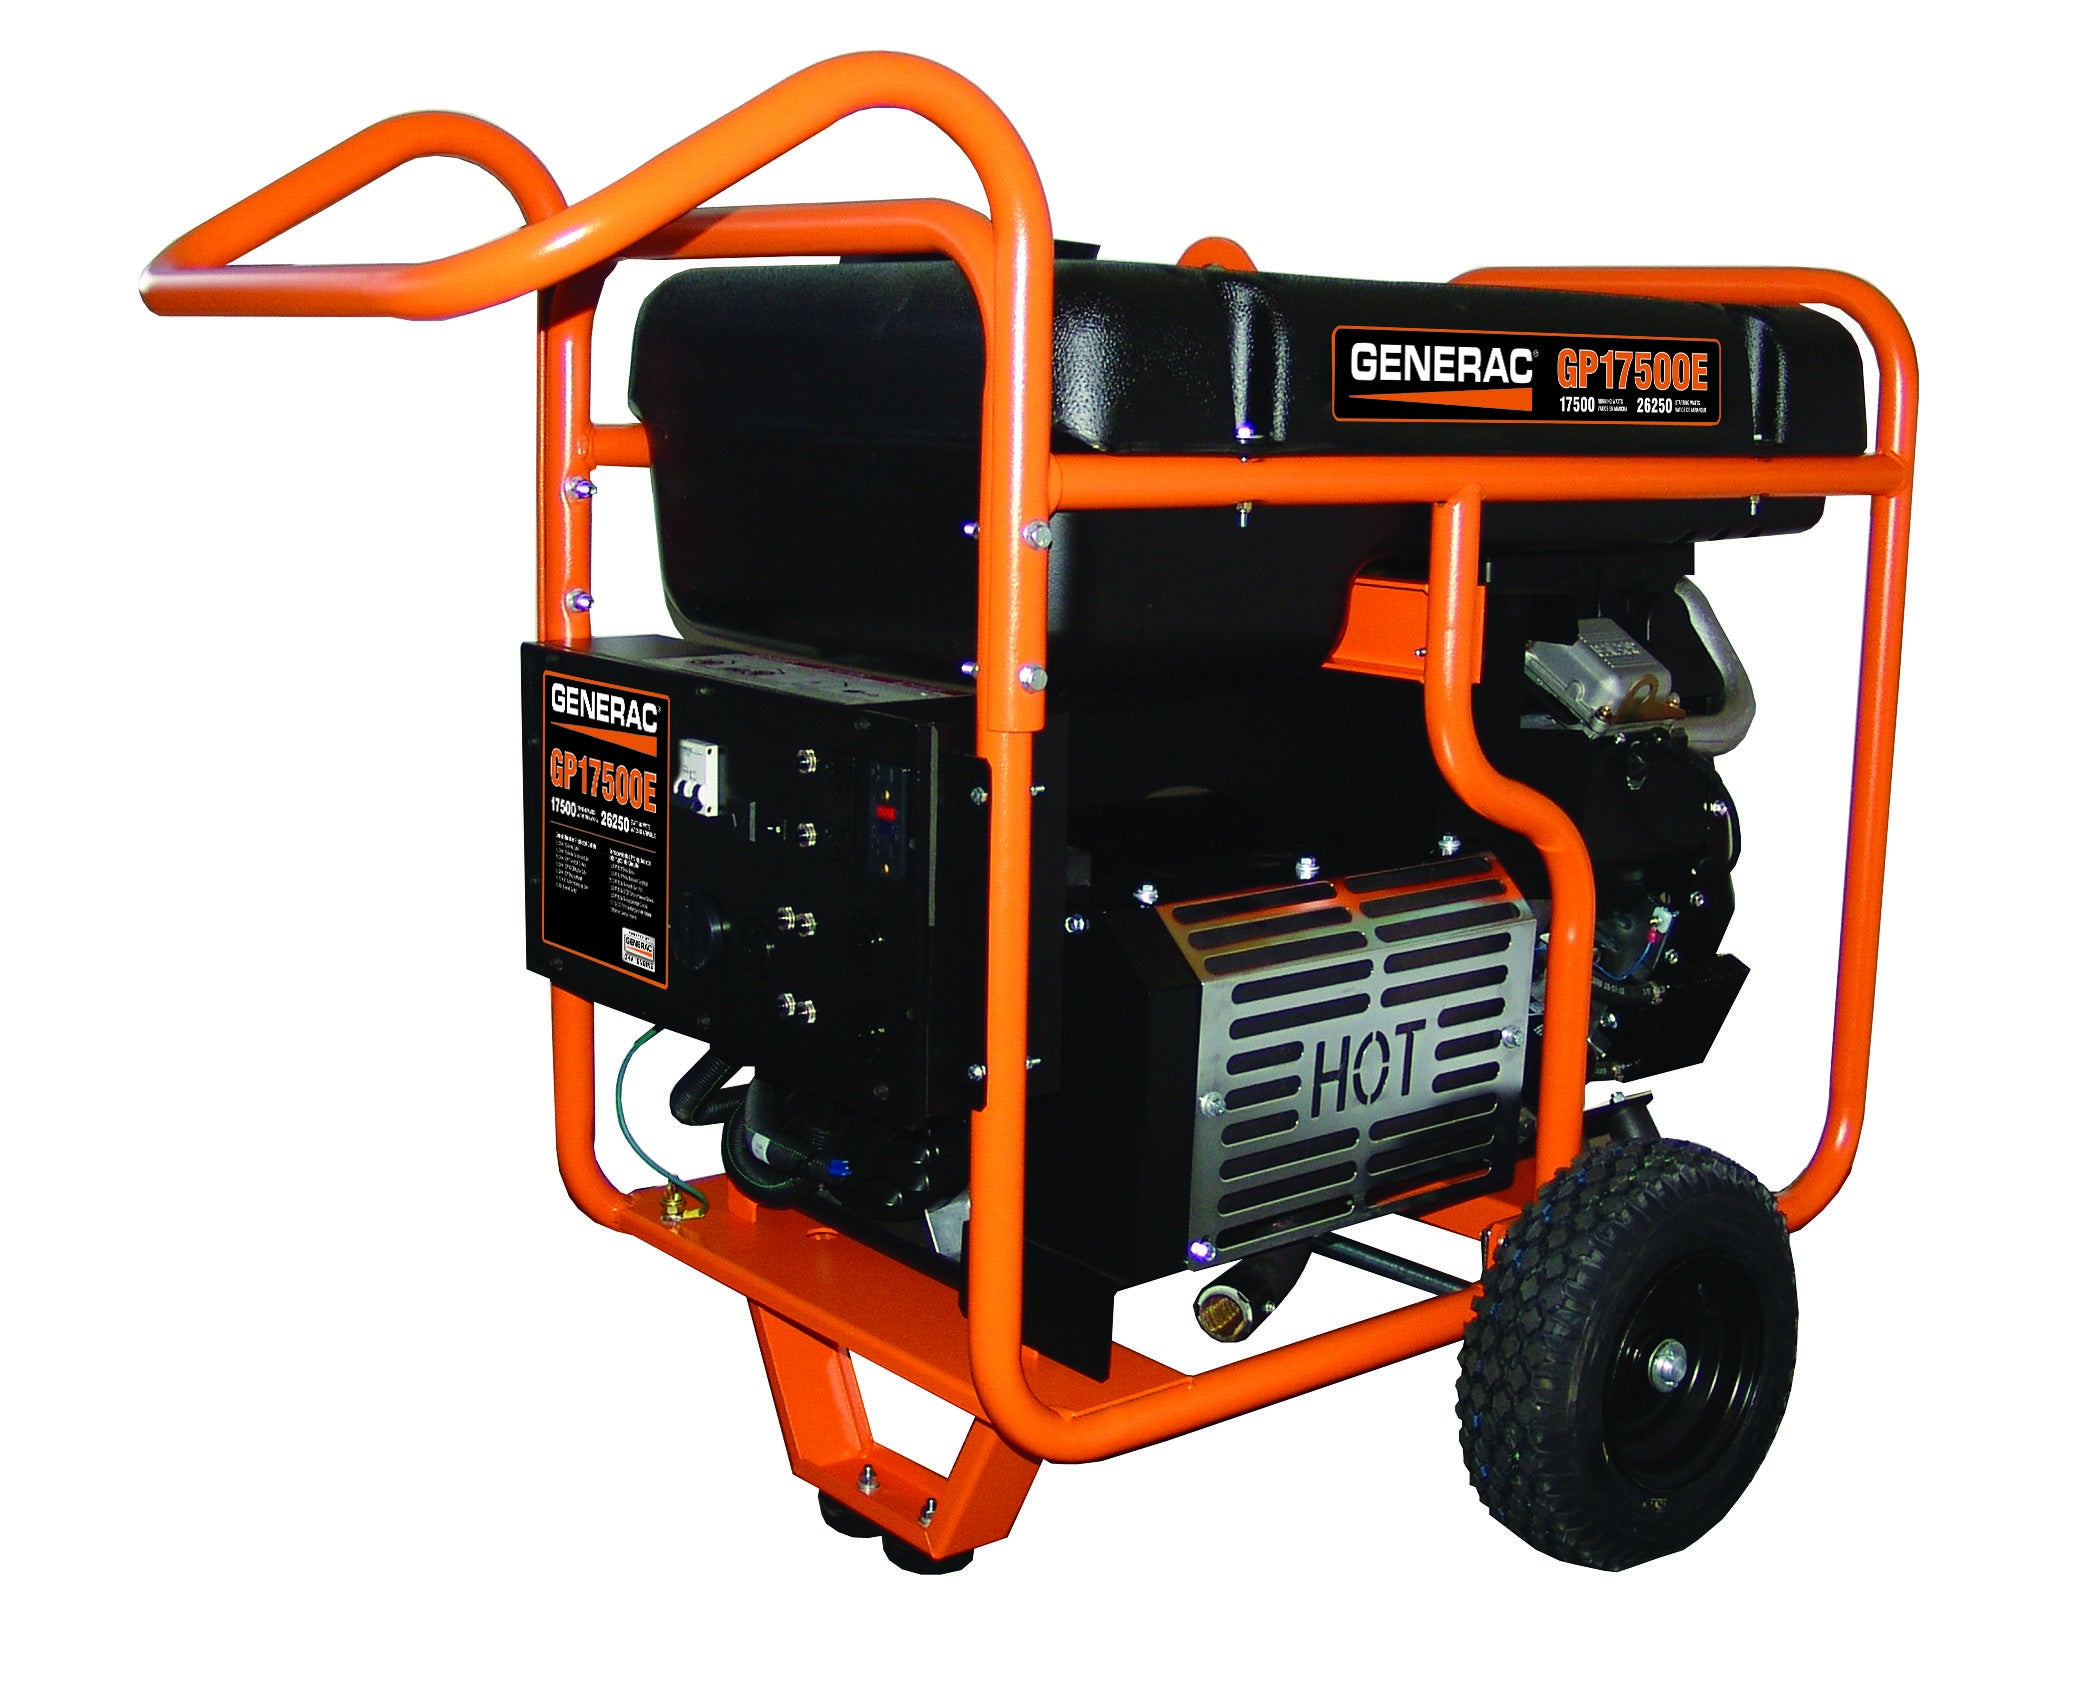 Generac 5735 GP E 17 500 Watt Electric Start Portable Gasoline